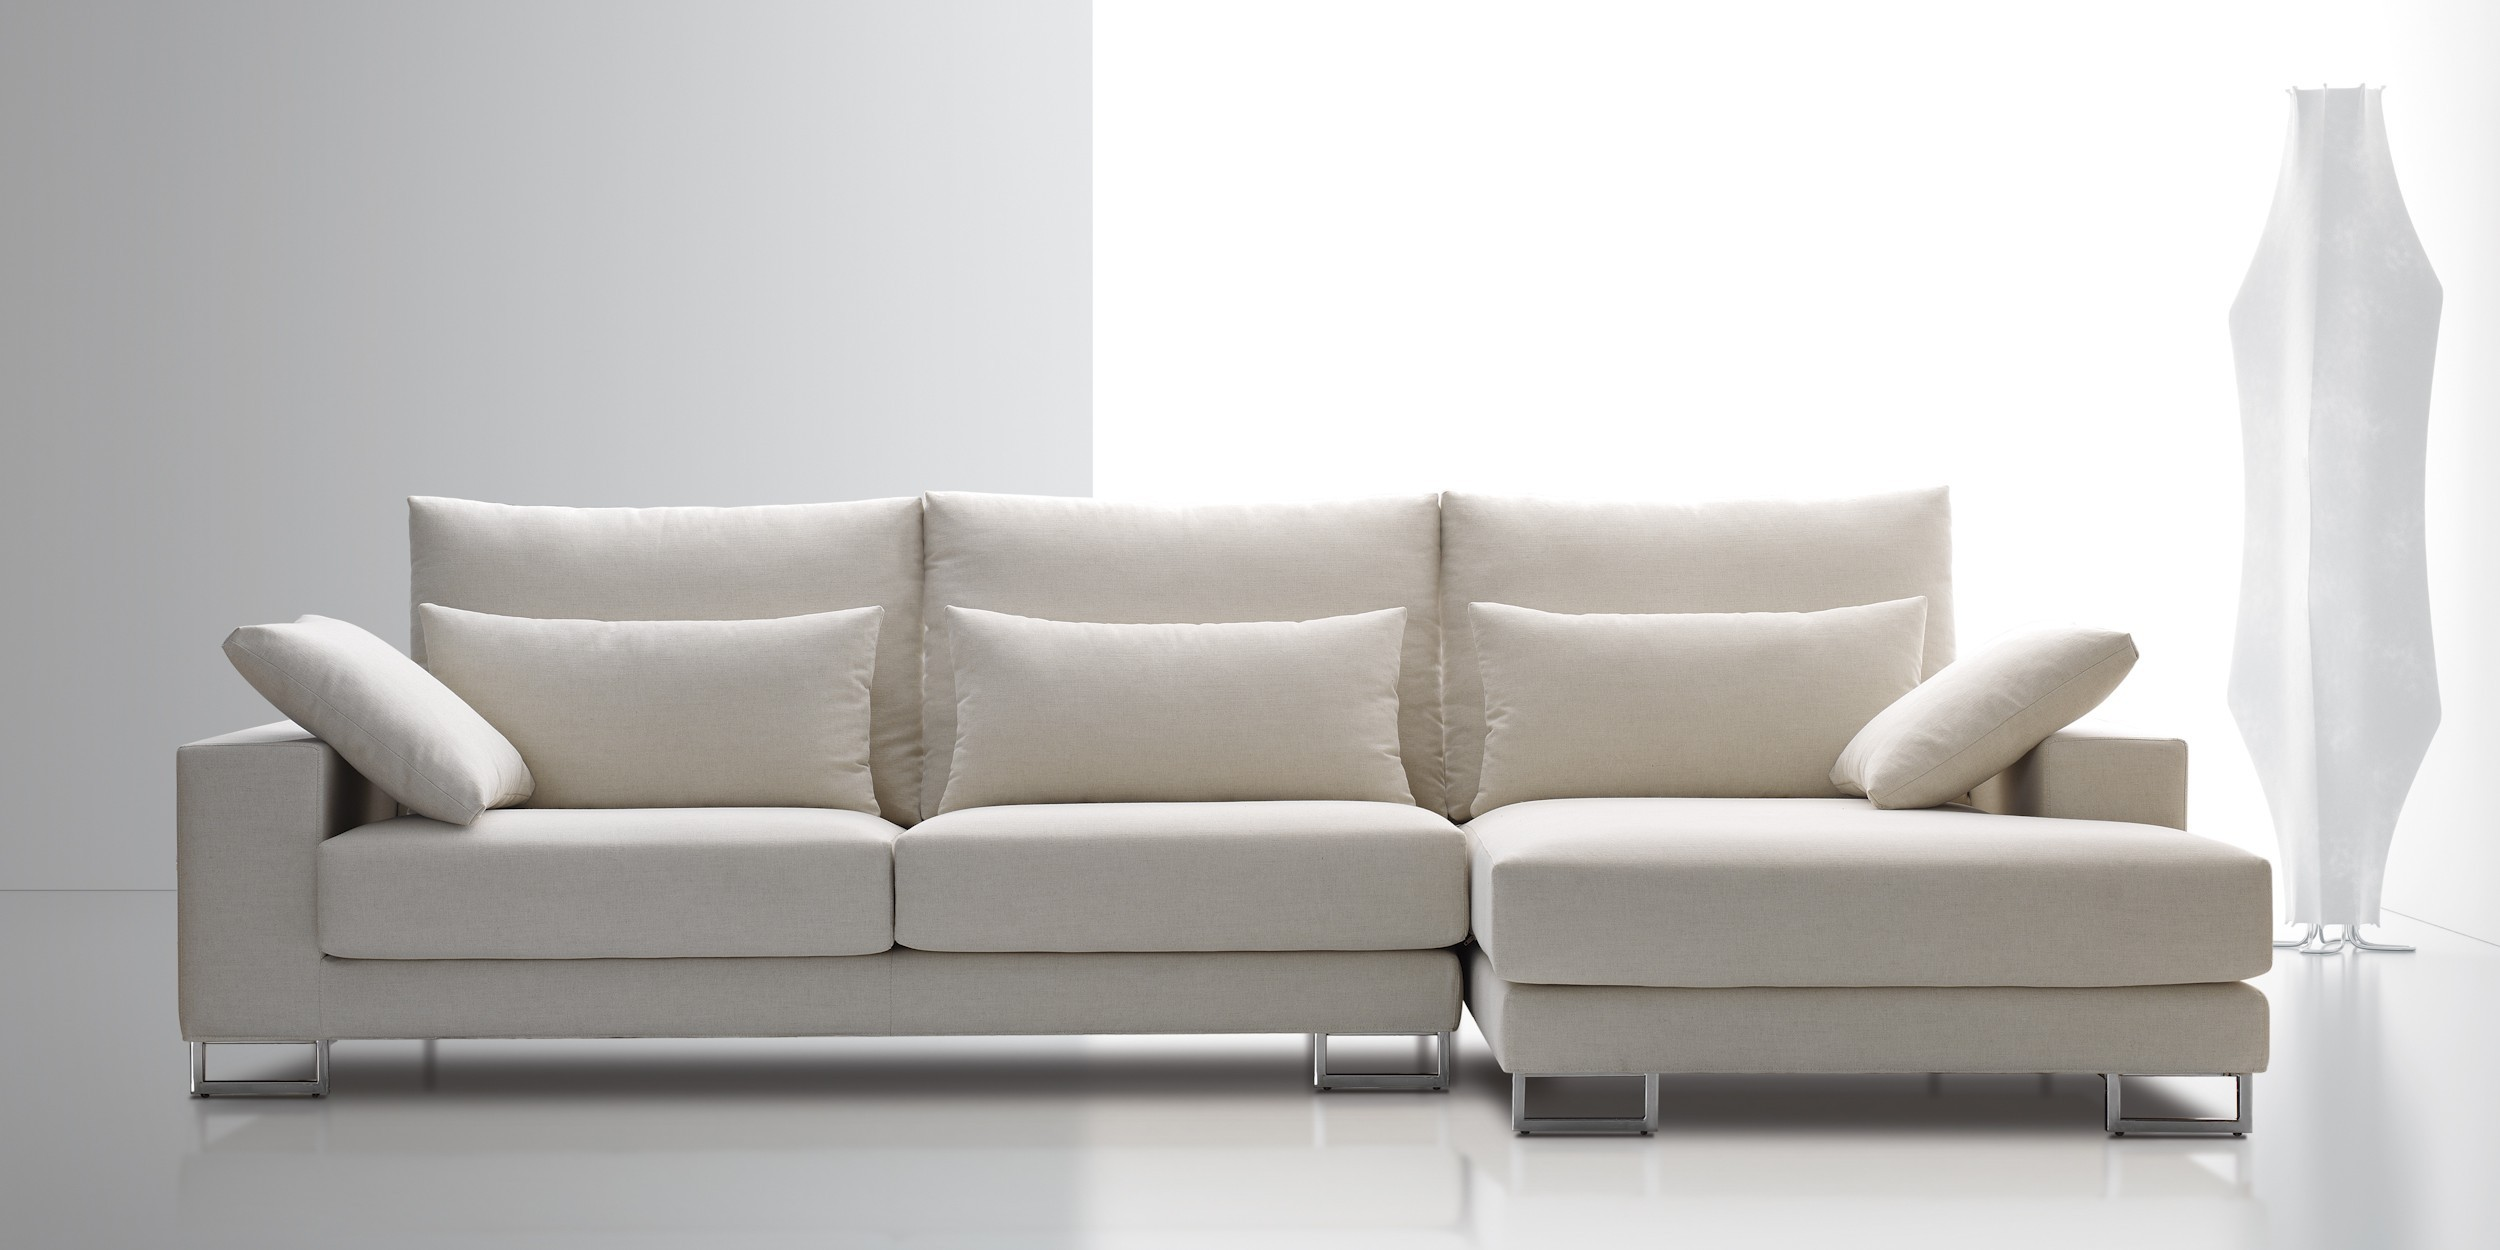 Fabrica sofas madrid for Sofas baratos alicante